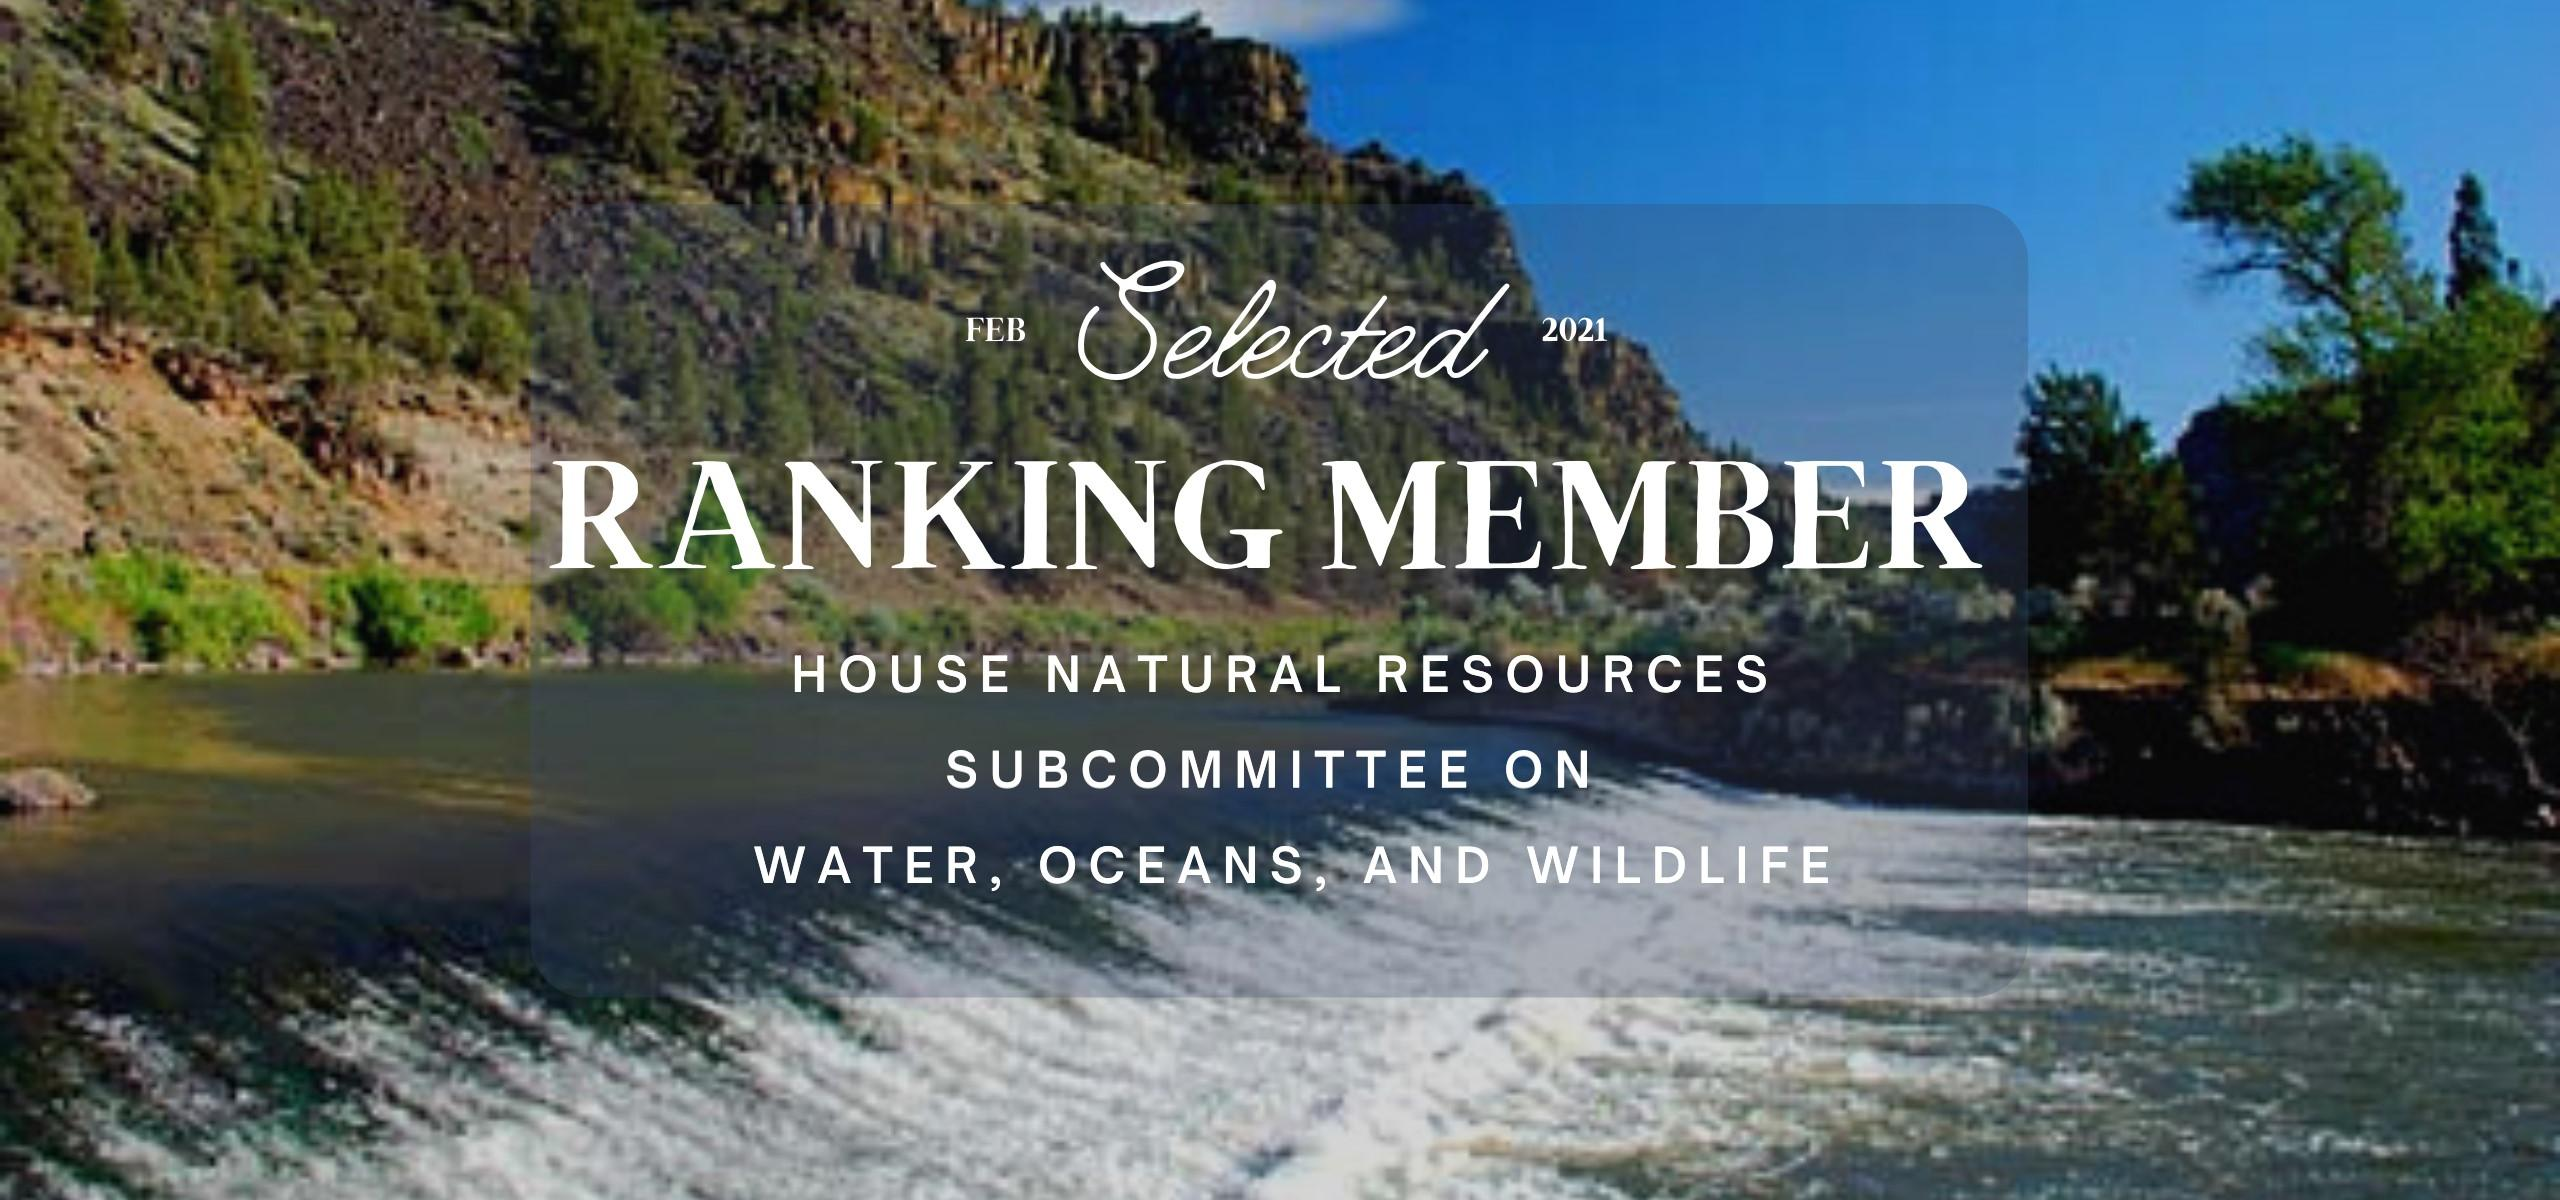 Ranking Member on Water Subcommittee Announcement